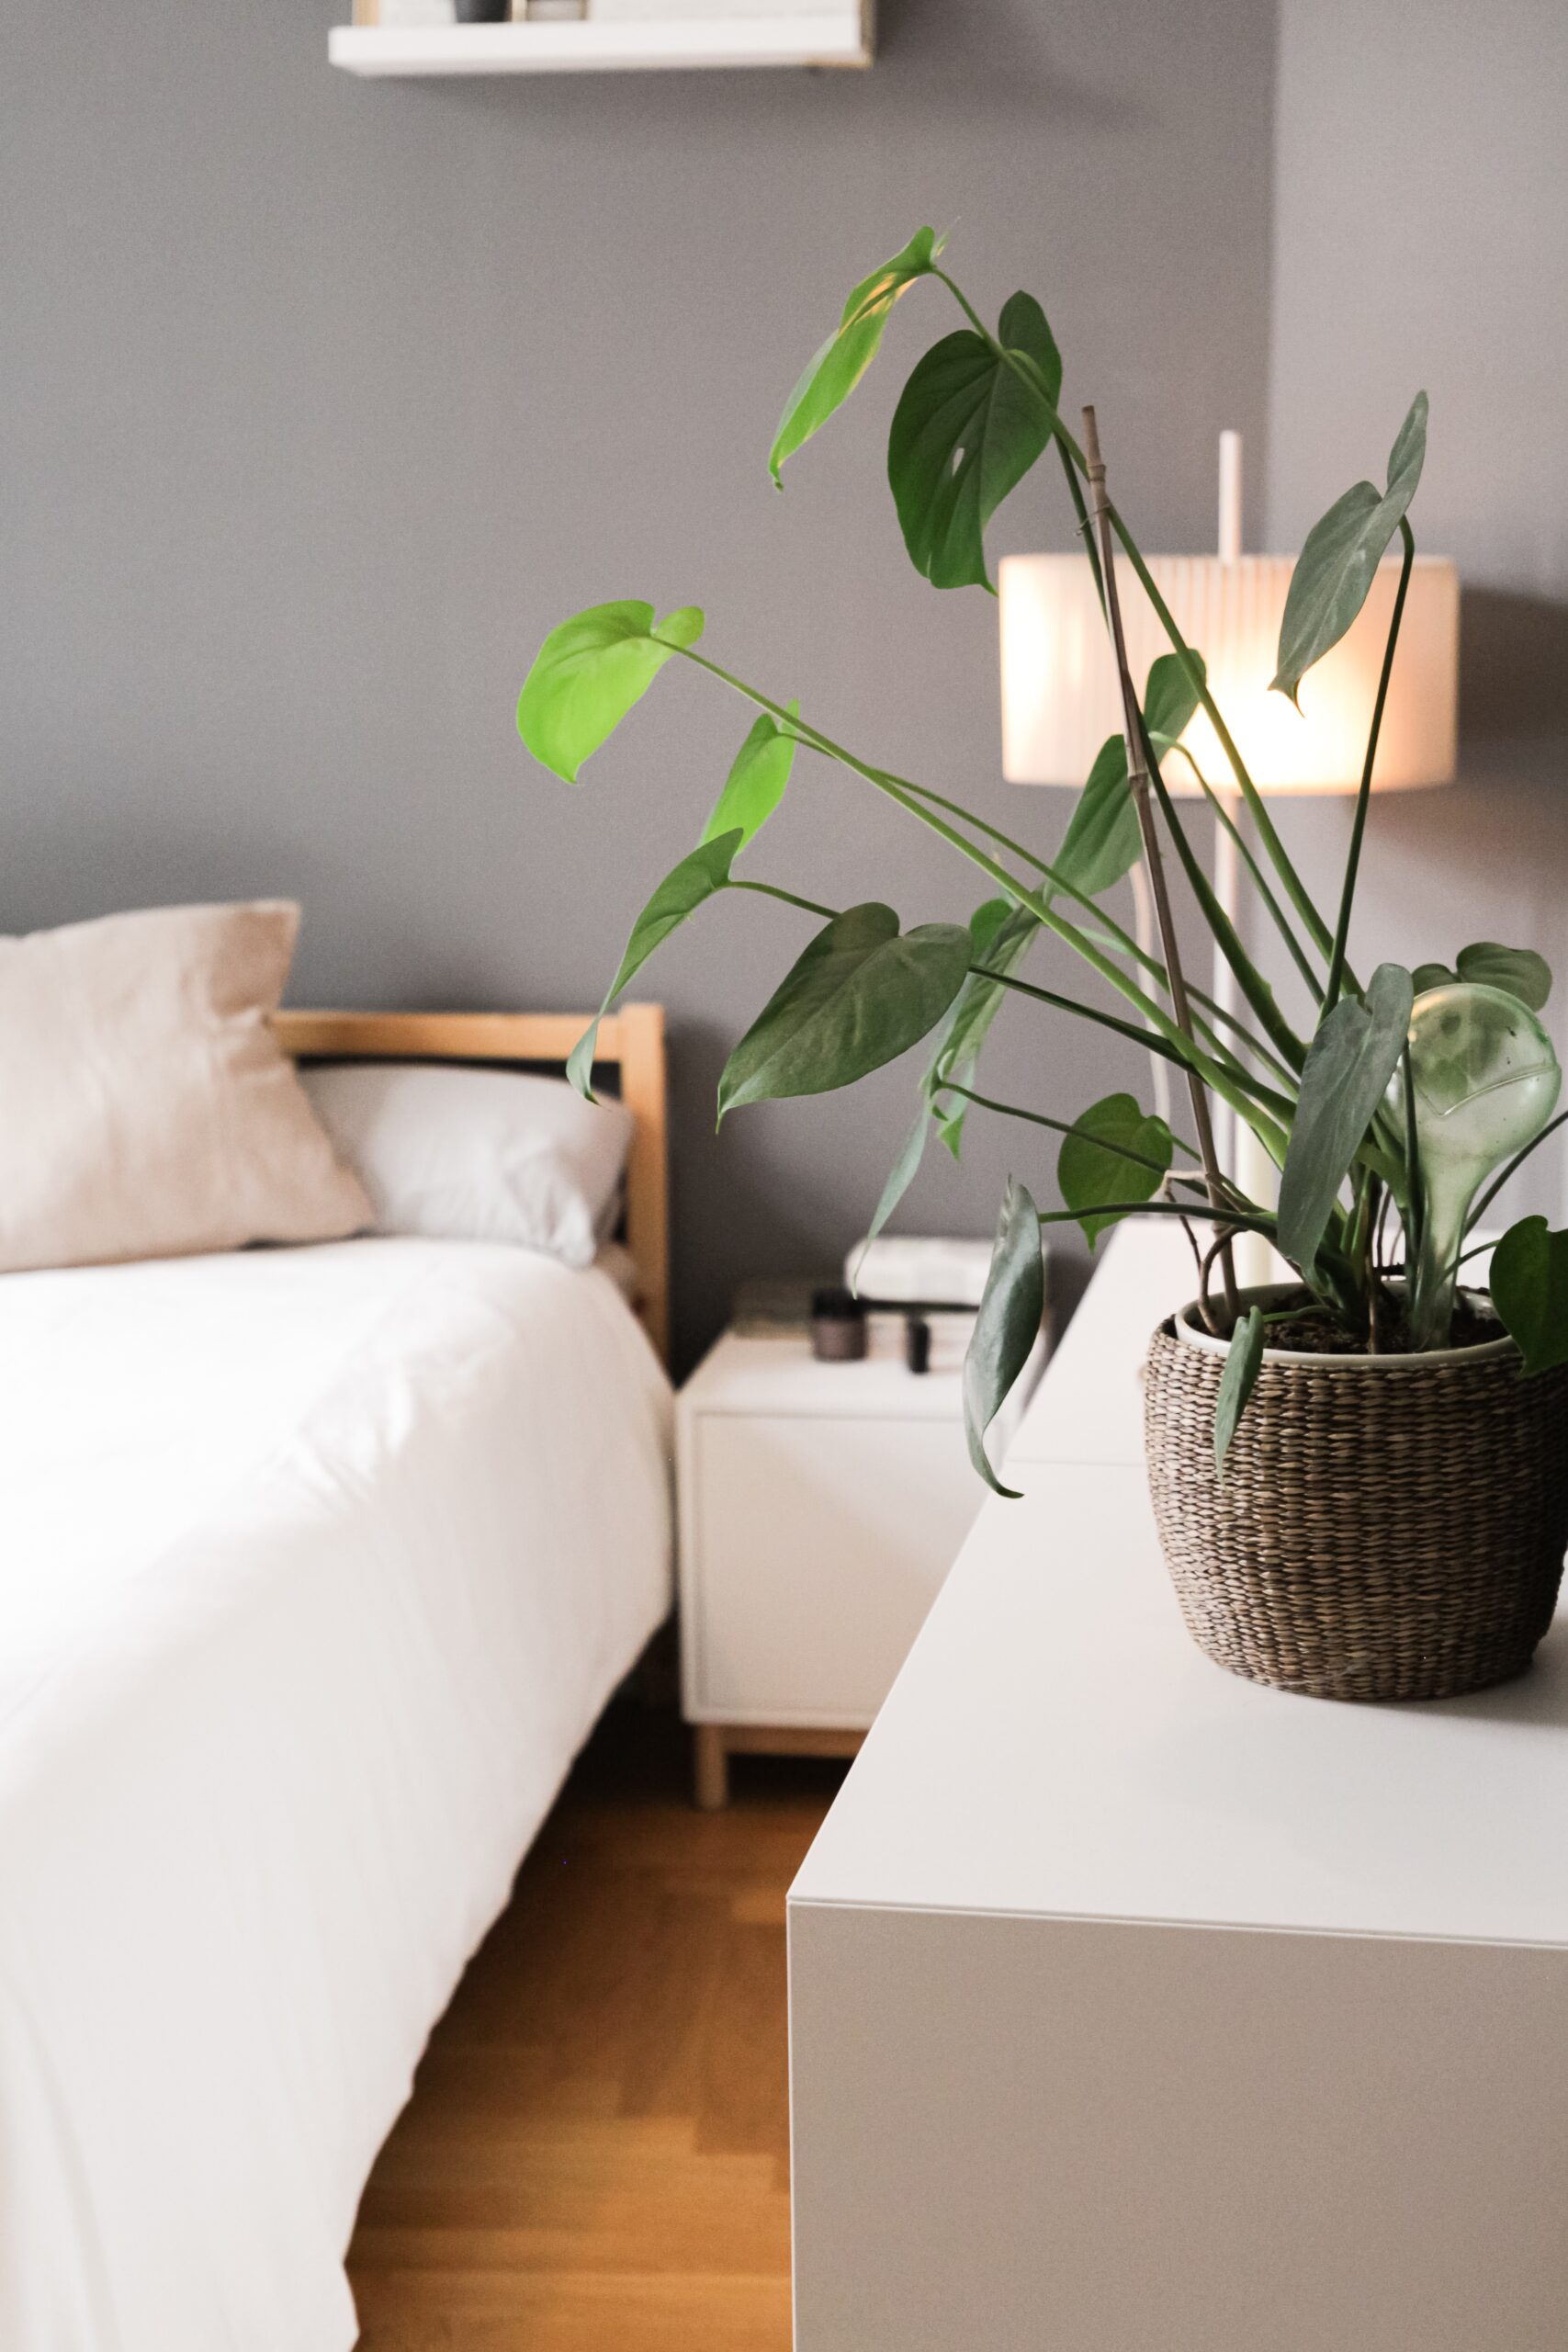 Personalise your room with fresh flowers